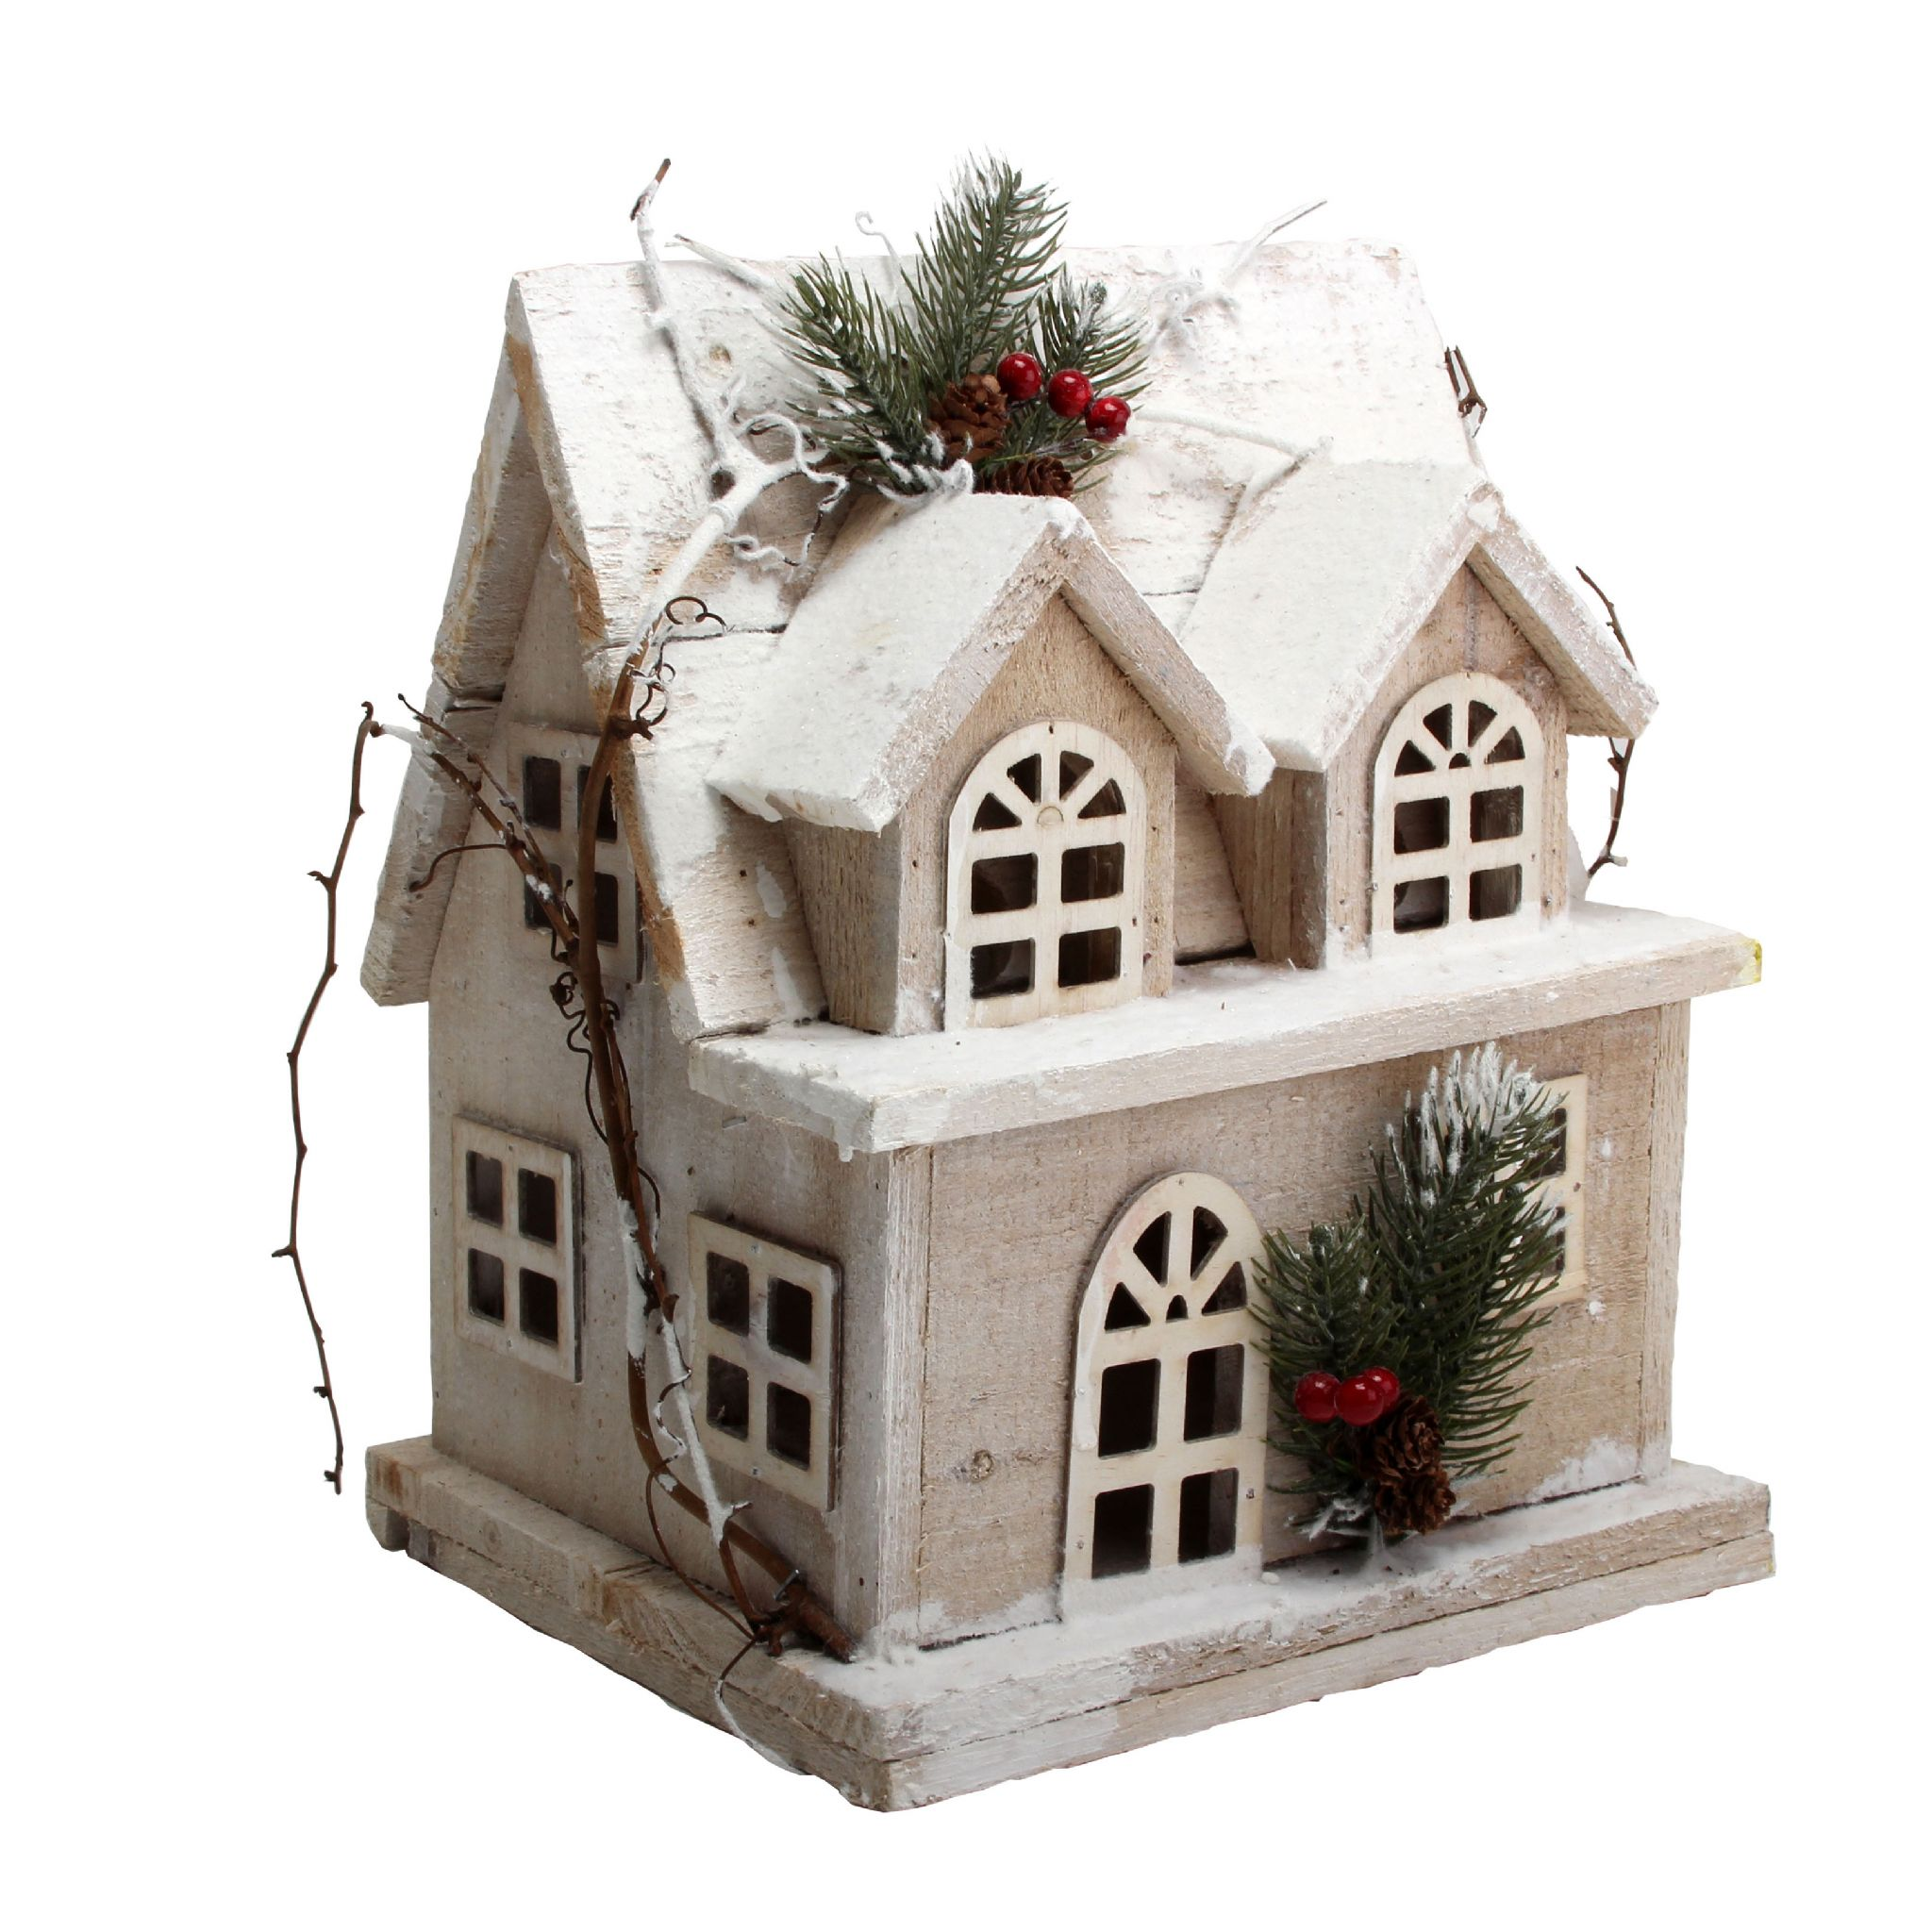 Decorated Model Homes: Large Wooden House Christmas Decoration